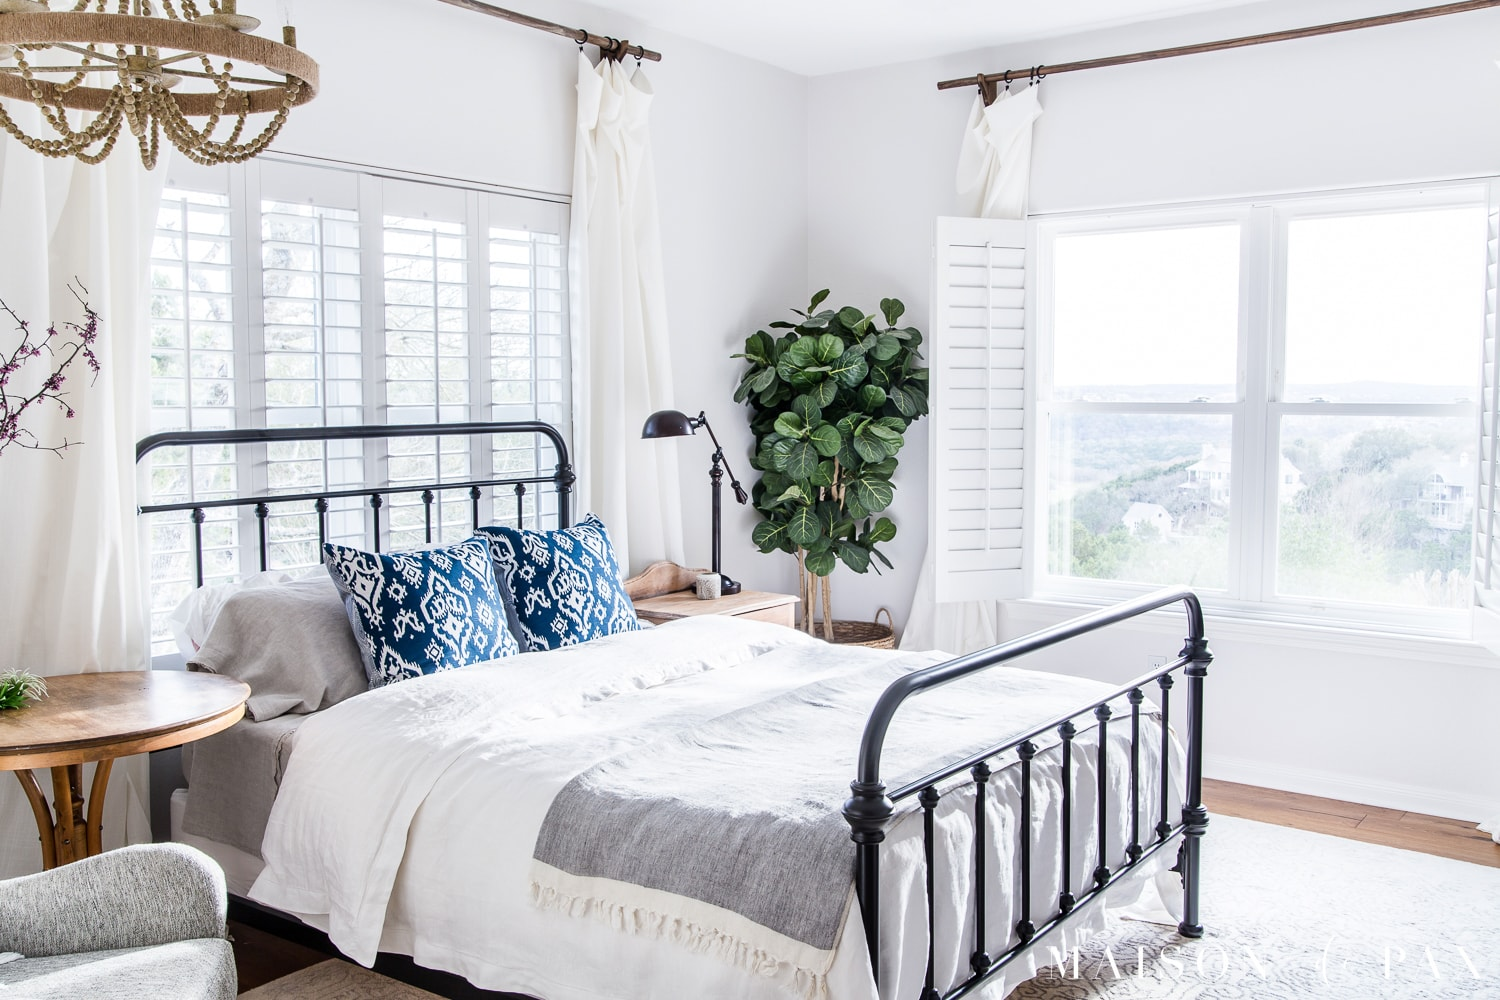 Simple Master Bedroom Decorating Ideas for Spring   Maison de Pax Mostly white master bedroom   so bright and open  Looking to add a seasonal  touch